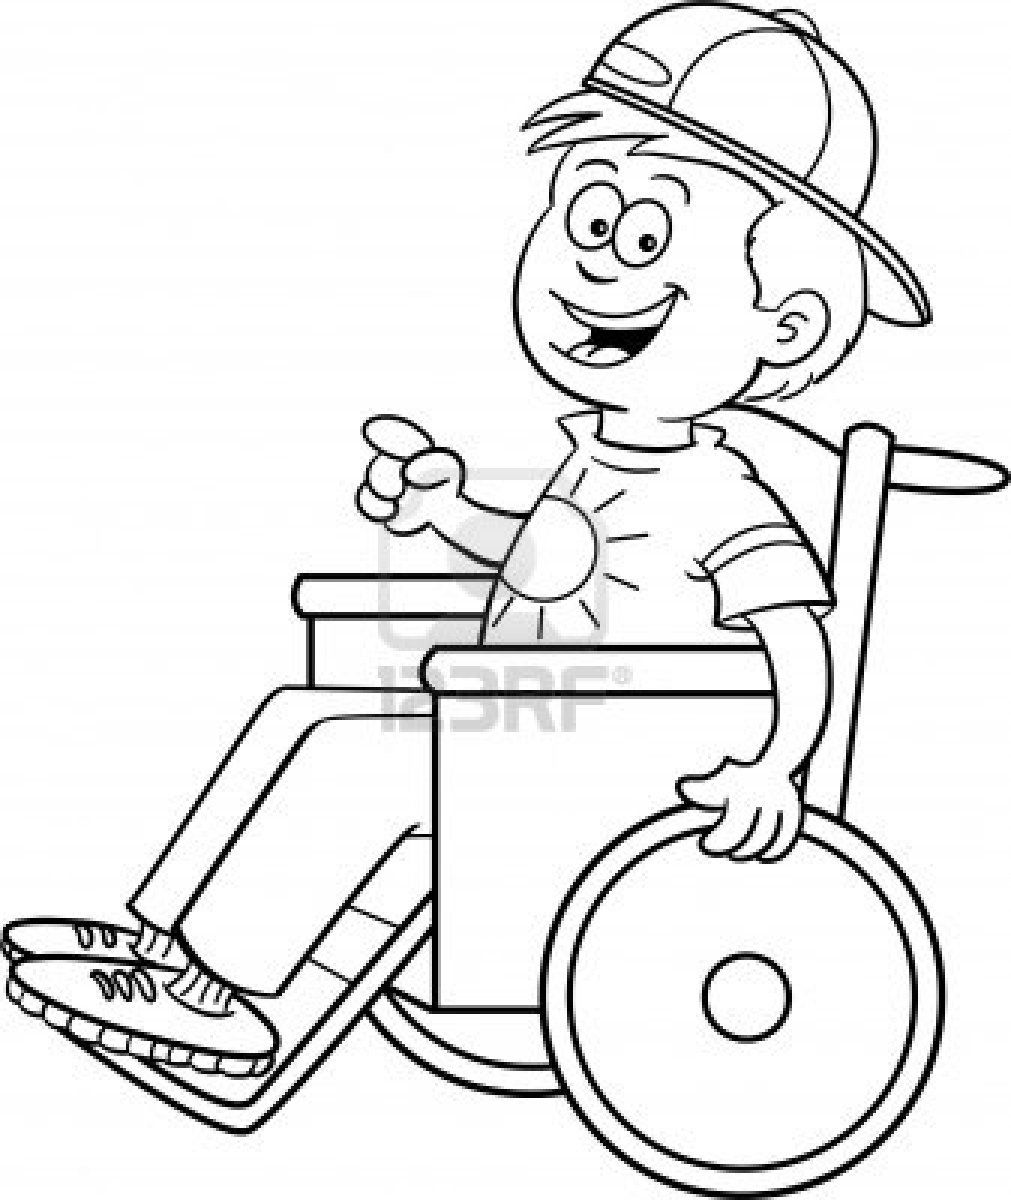 Black And White Illustration Of A Boy In A Wheelchair Black And White Illustration Doodle People Illustration